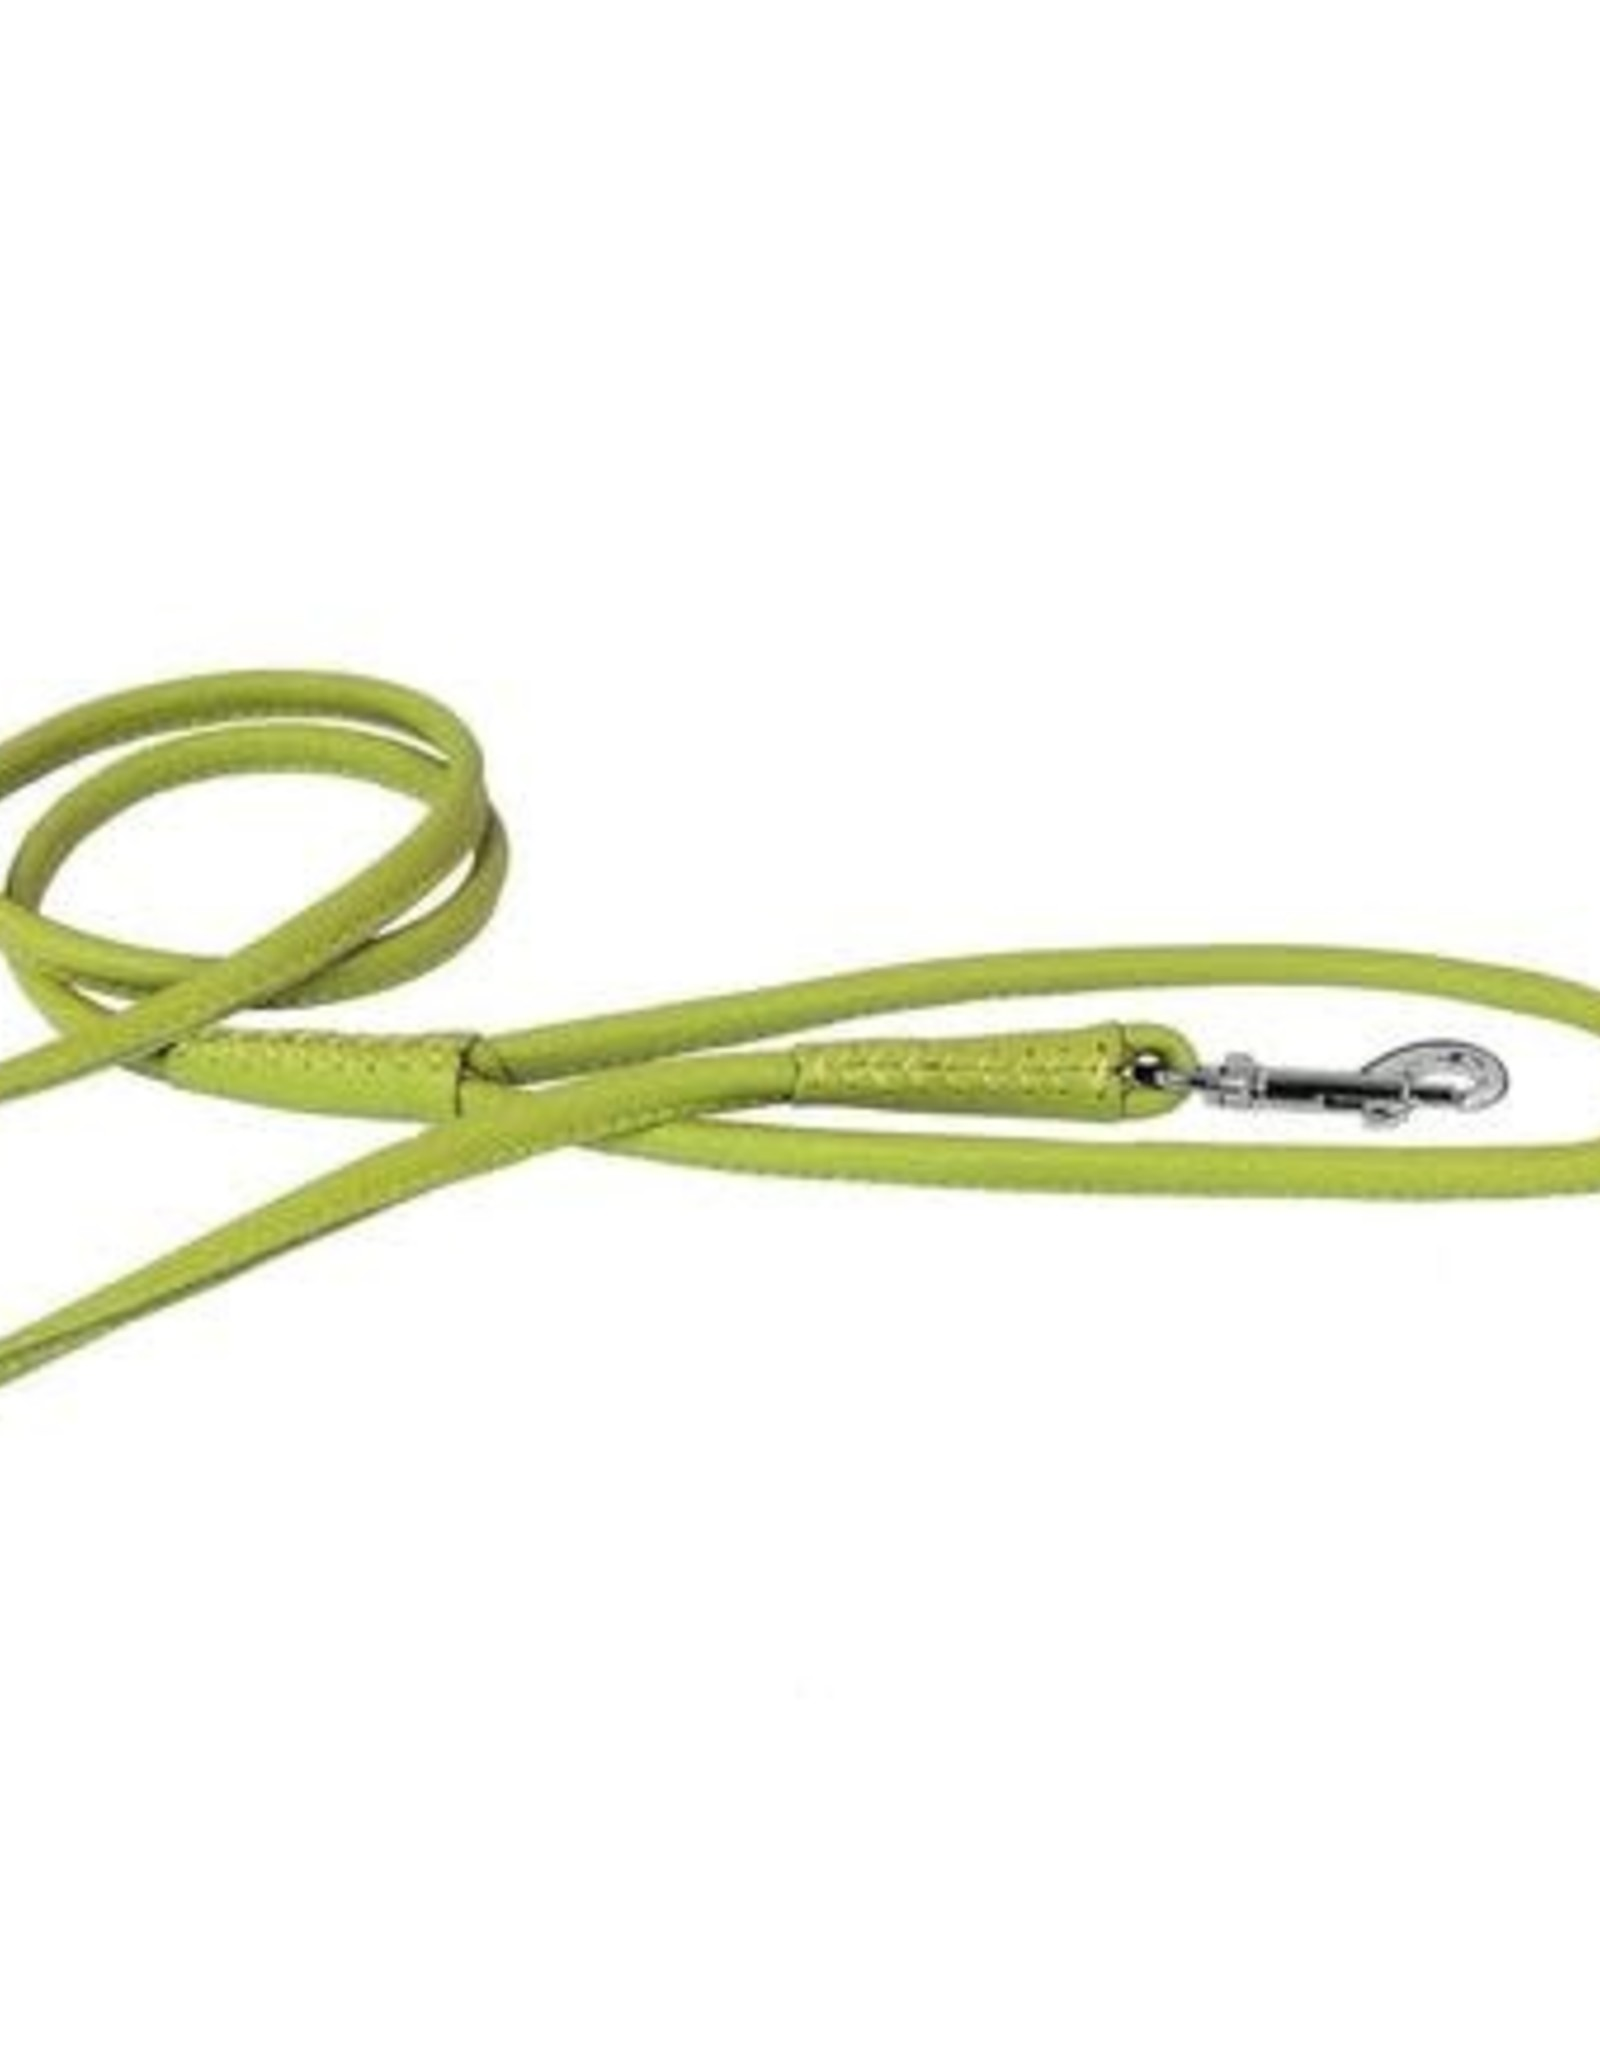 "Dogline Dogline 1/2"" Lime Green Leather Lead"